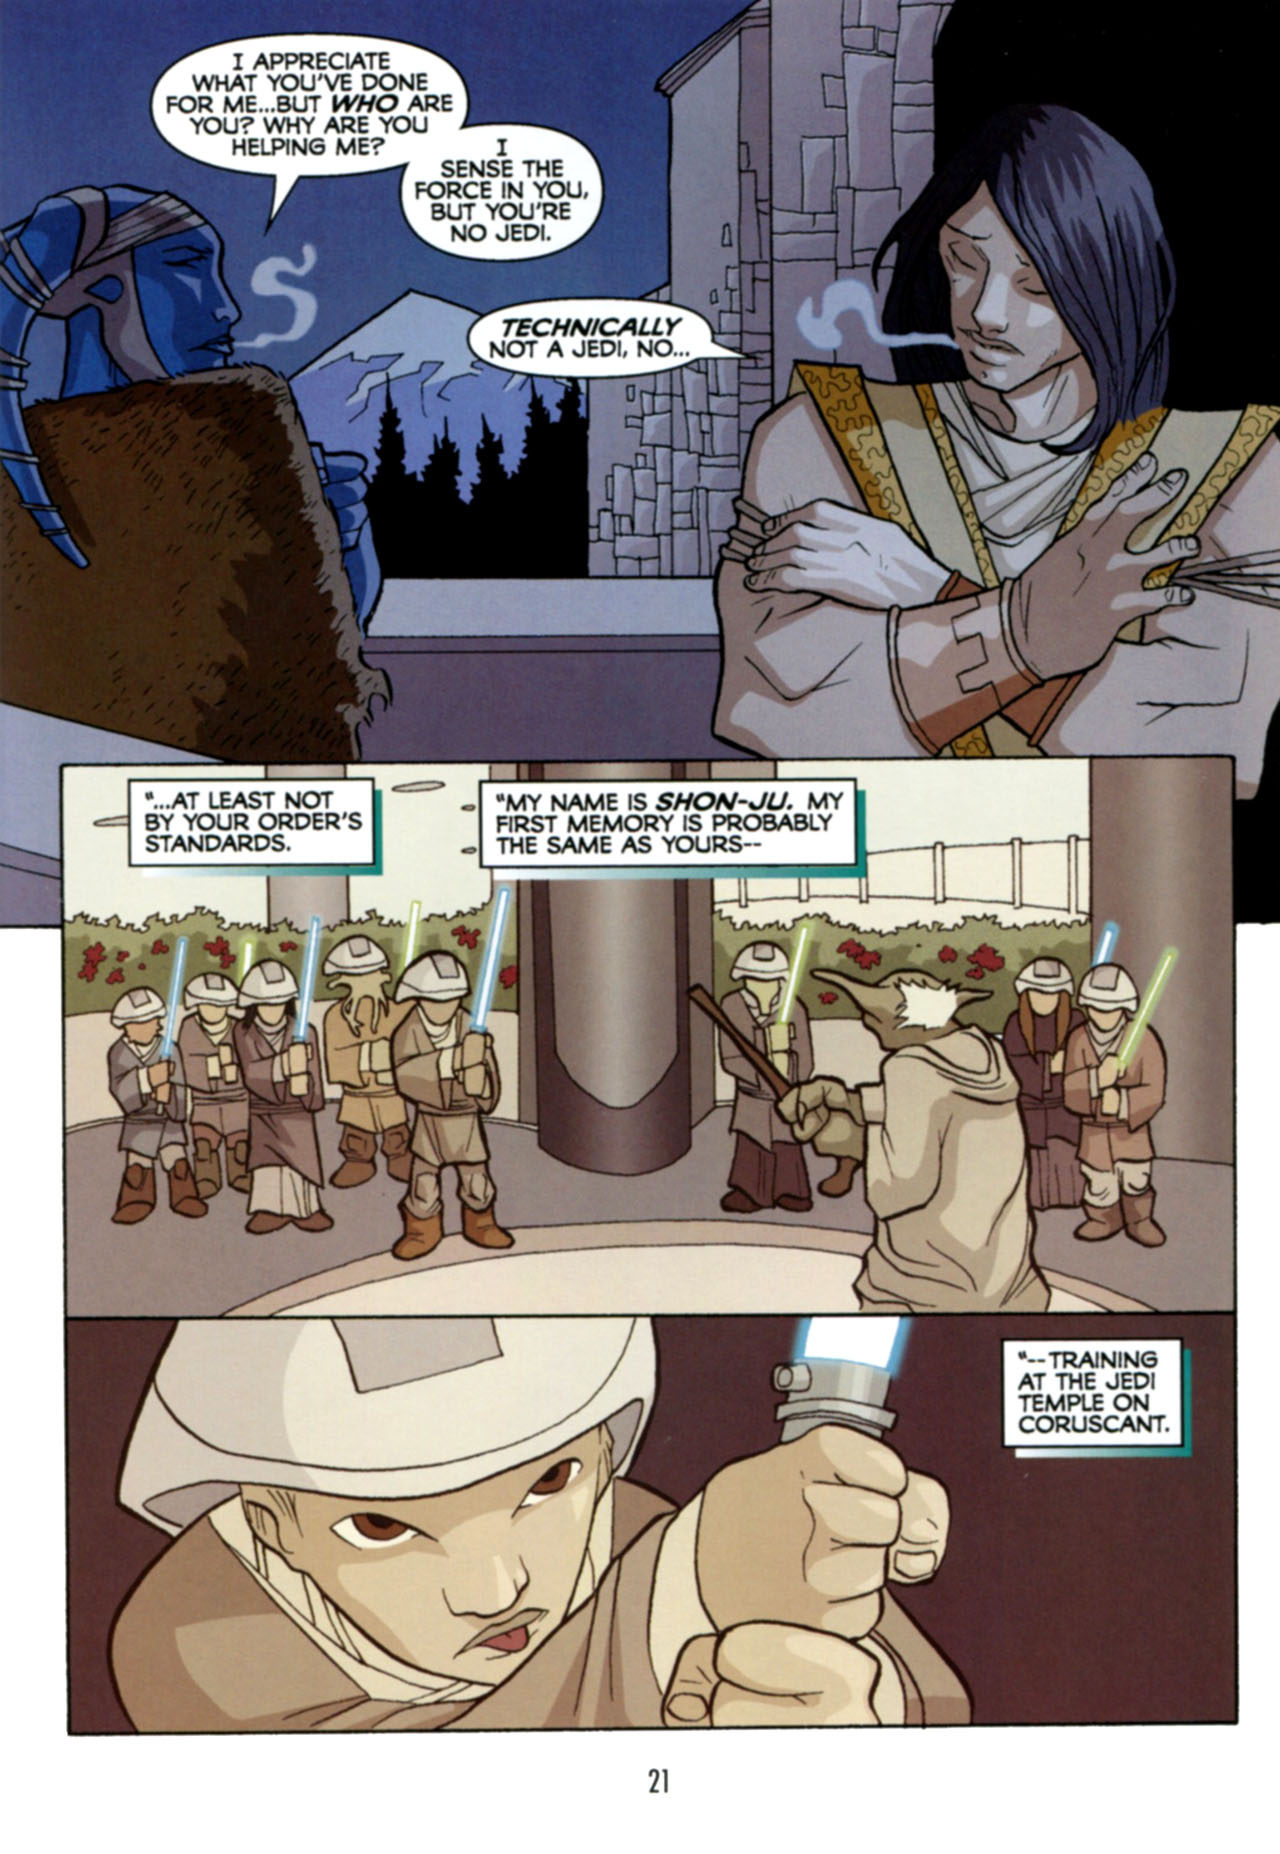 Read online Star Wars: The Clone Wars - Deadly Hands of Shon-Ju comic -  Issue # Full - 22